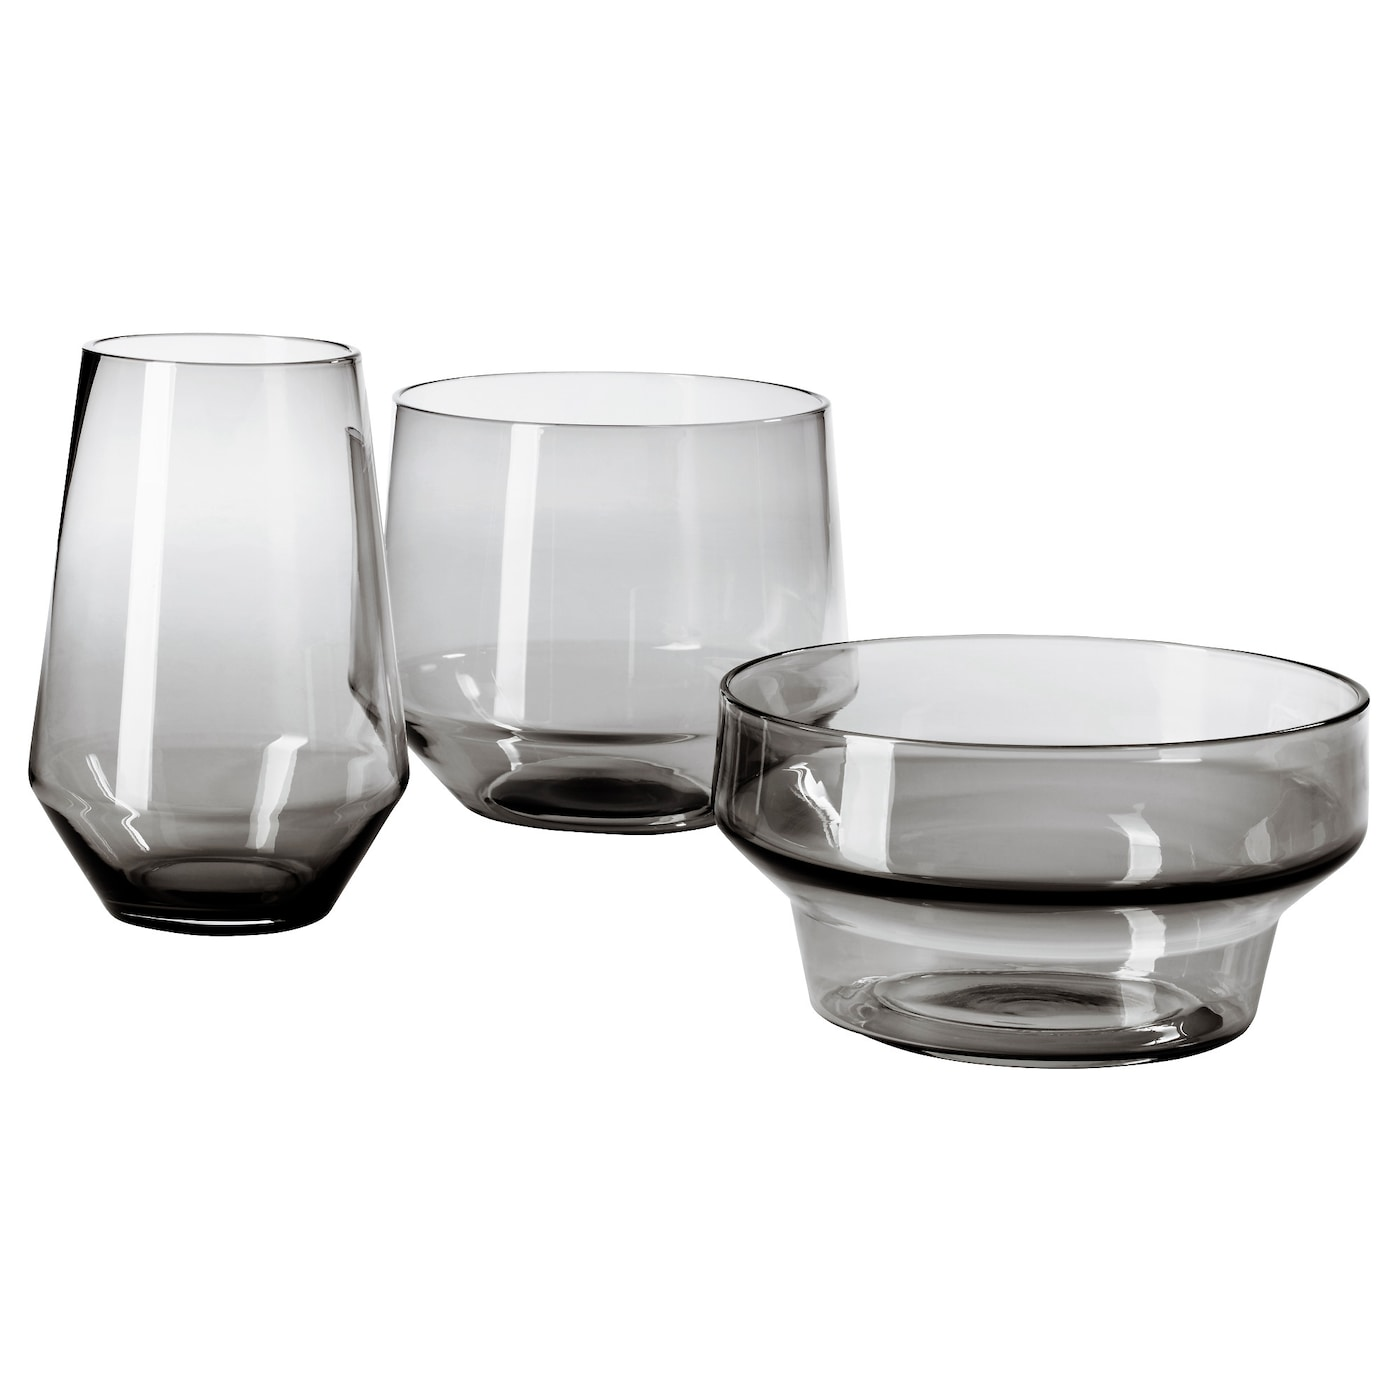 Glass flower vases and bowls ikea ikea ikea ps 2017 vase set of 3 handmade each vase has been shaped reviewsmspy